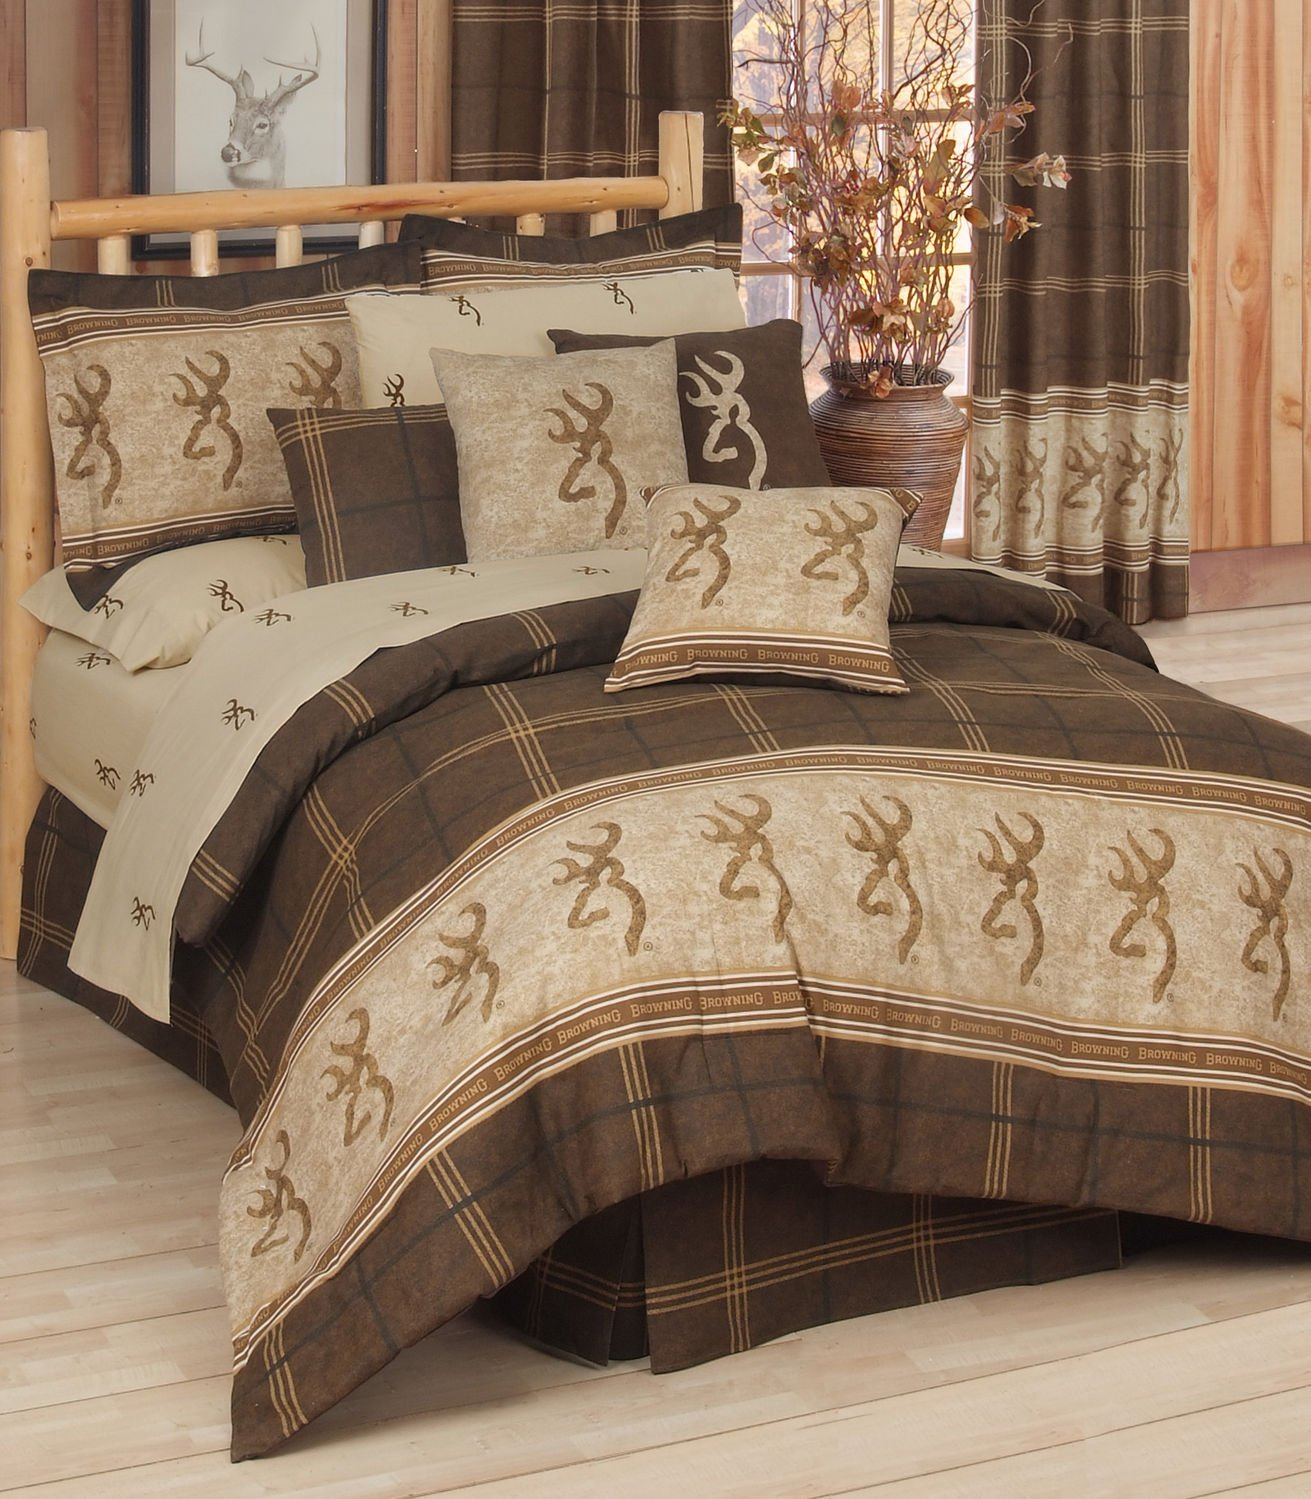 gatlinburg the sets comforter queen comforters bedding faux bears rustic leather